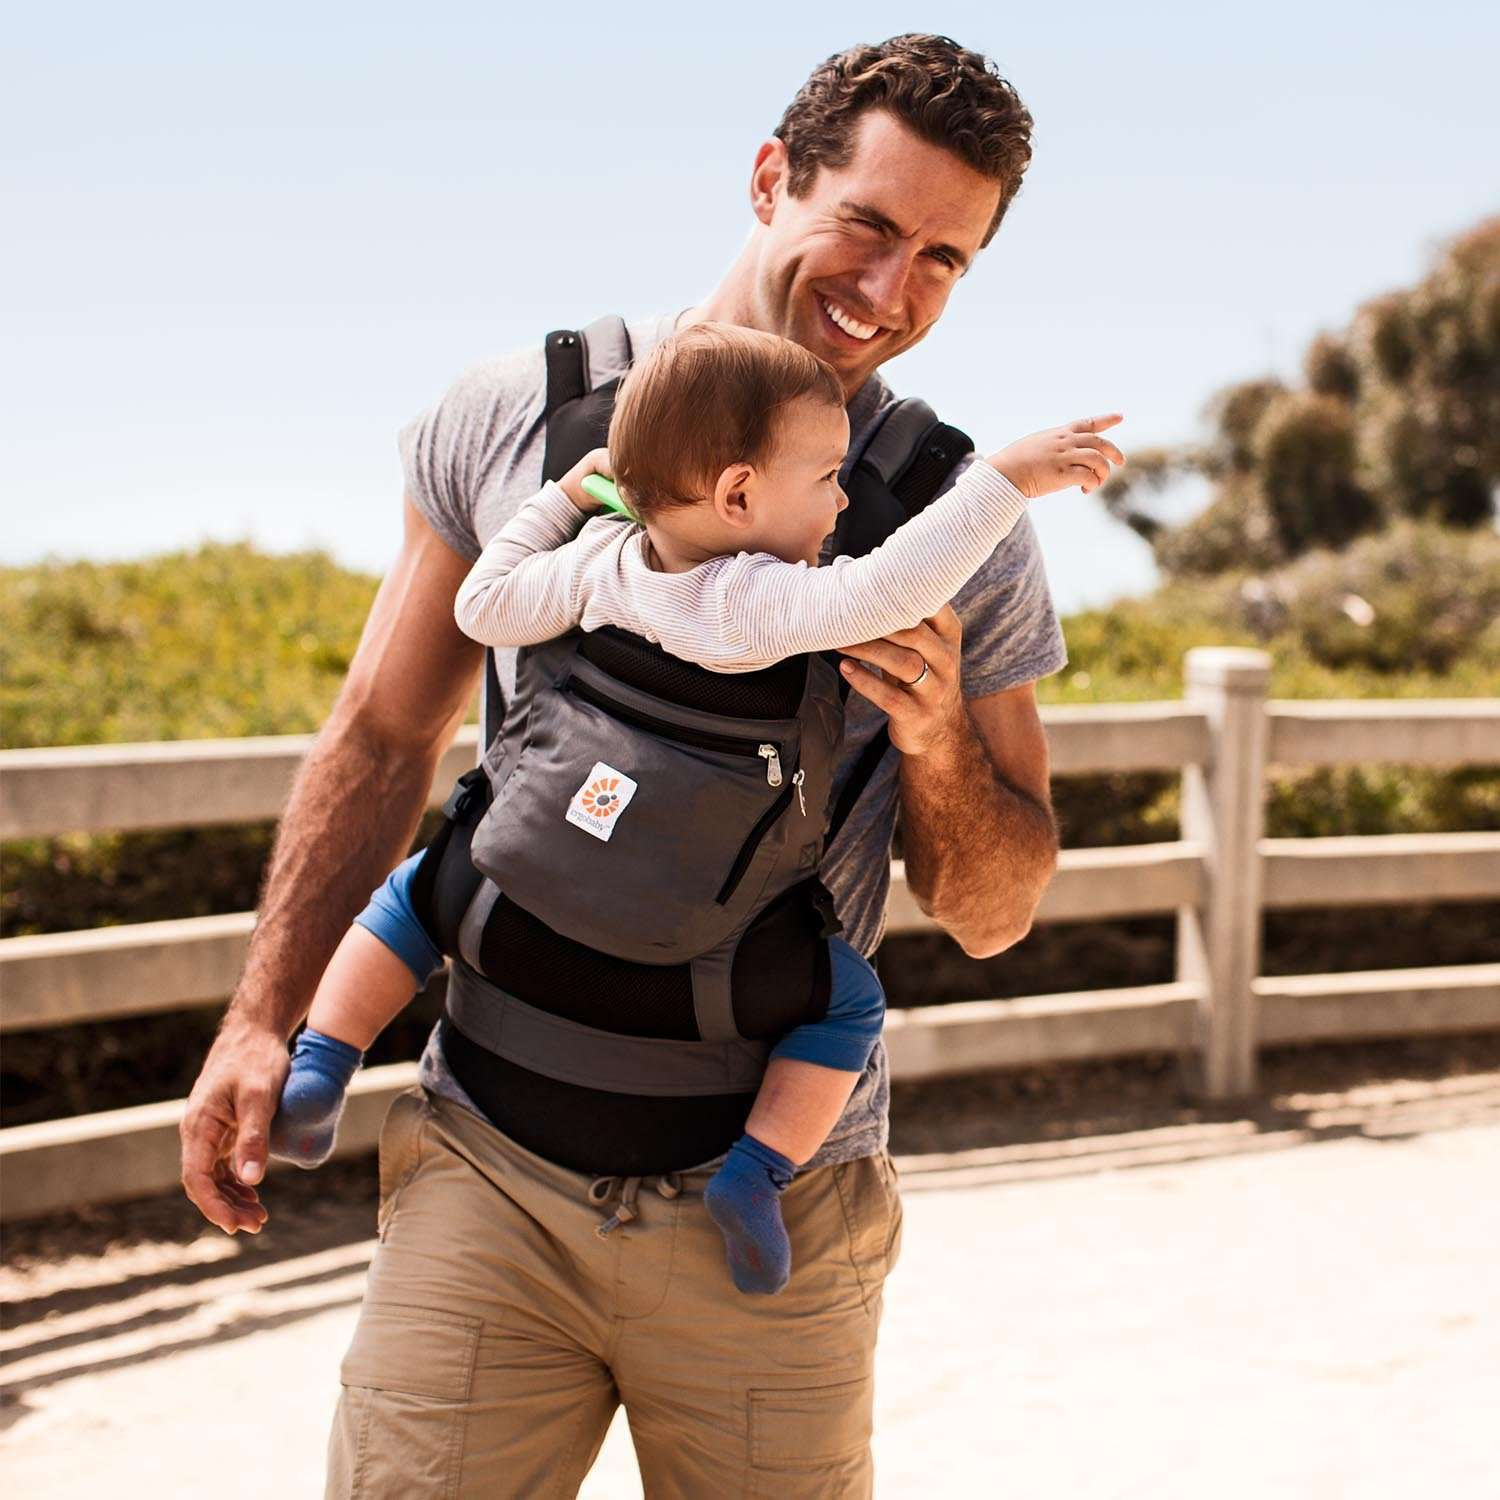 The 5 Best Baby Carriers For Fathers To Buy In 2019